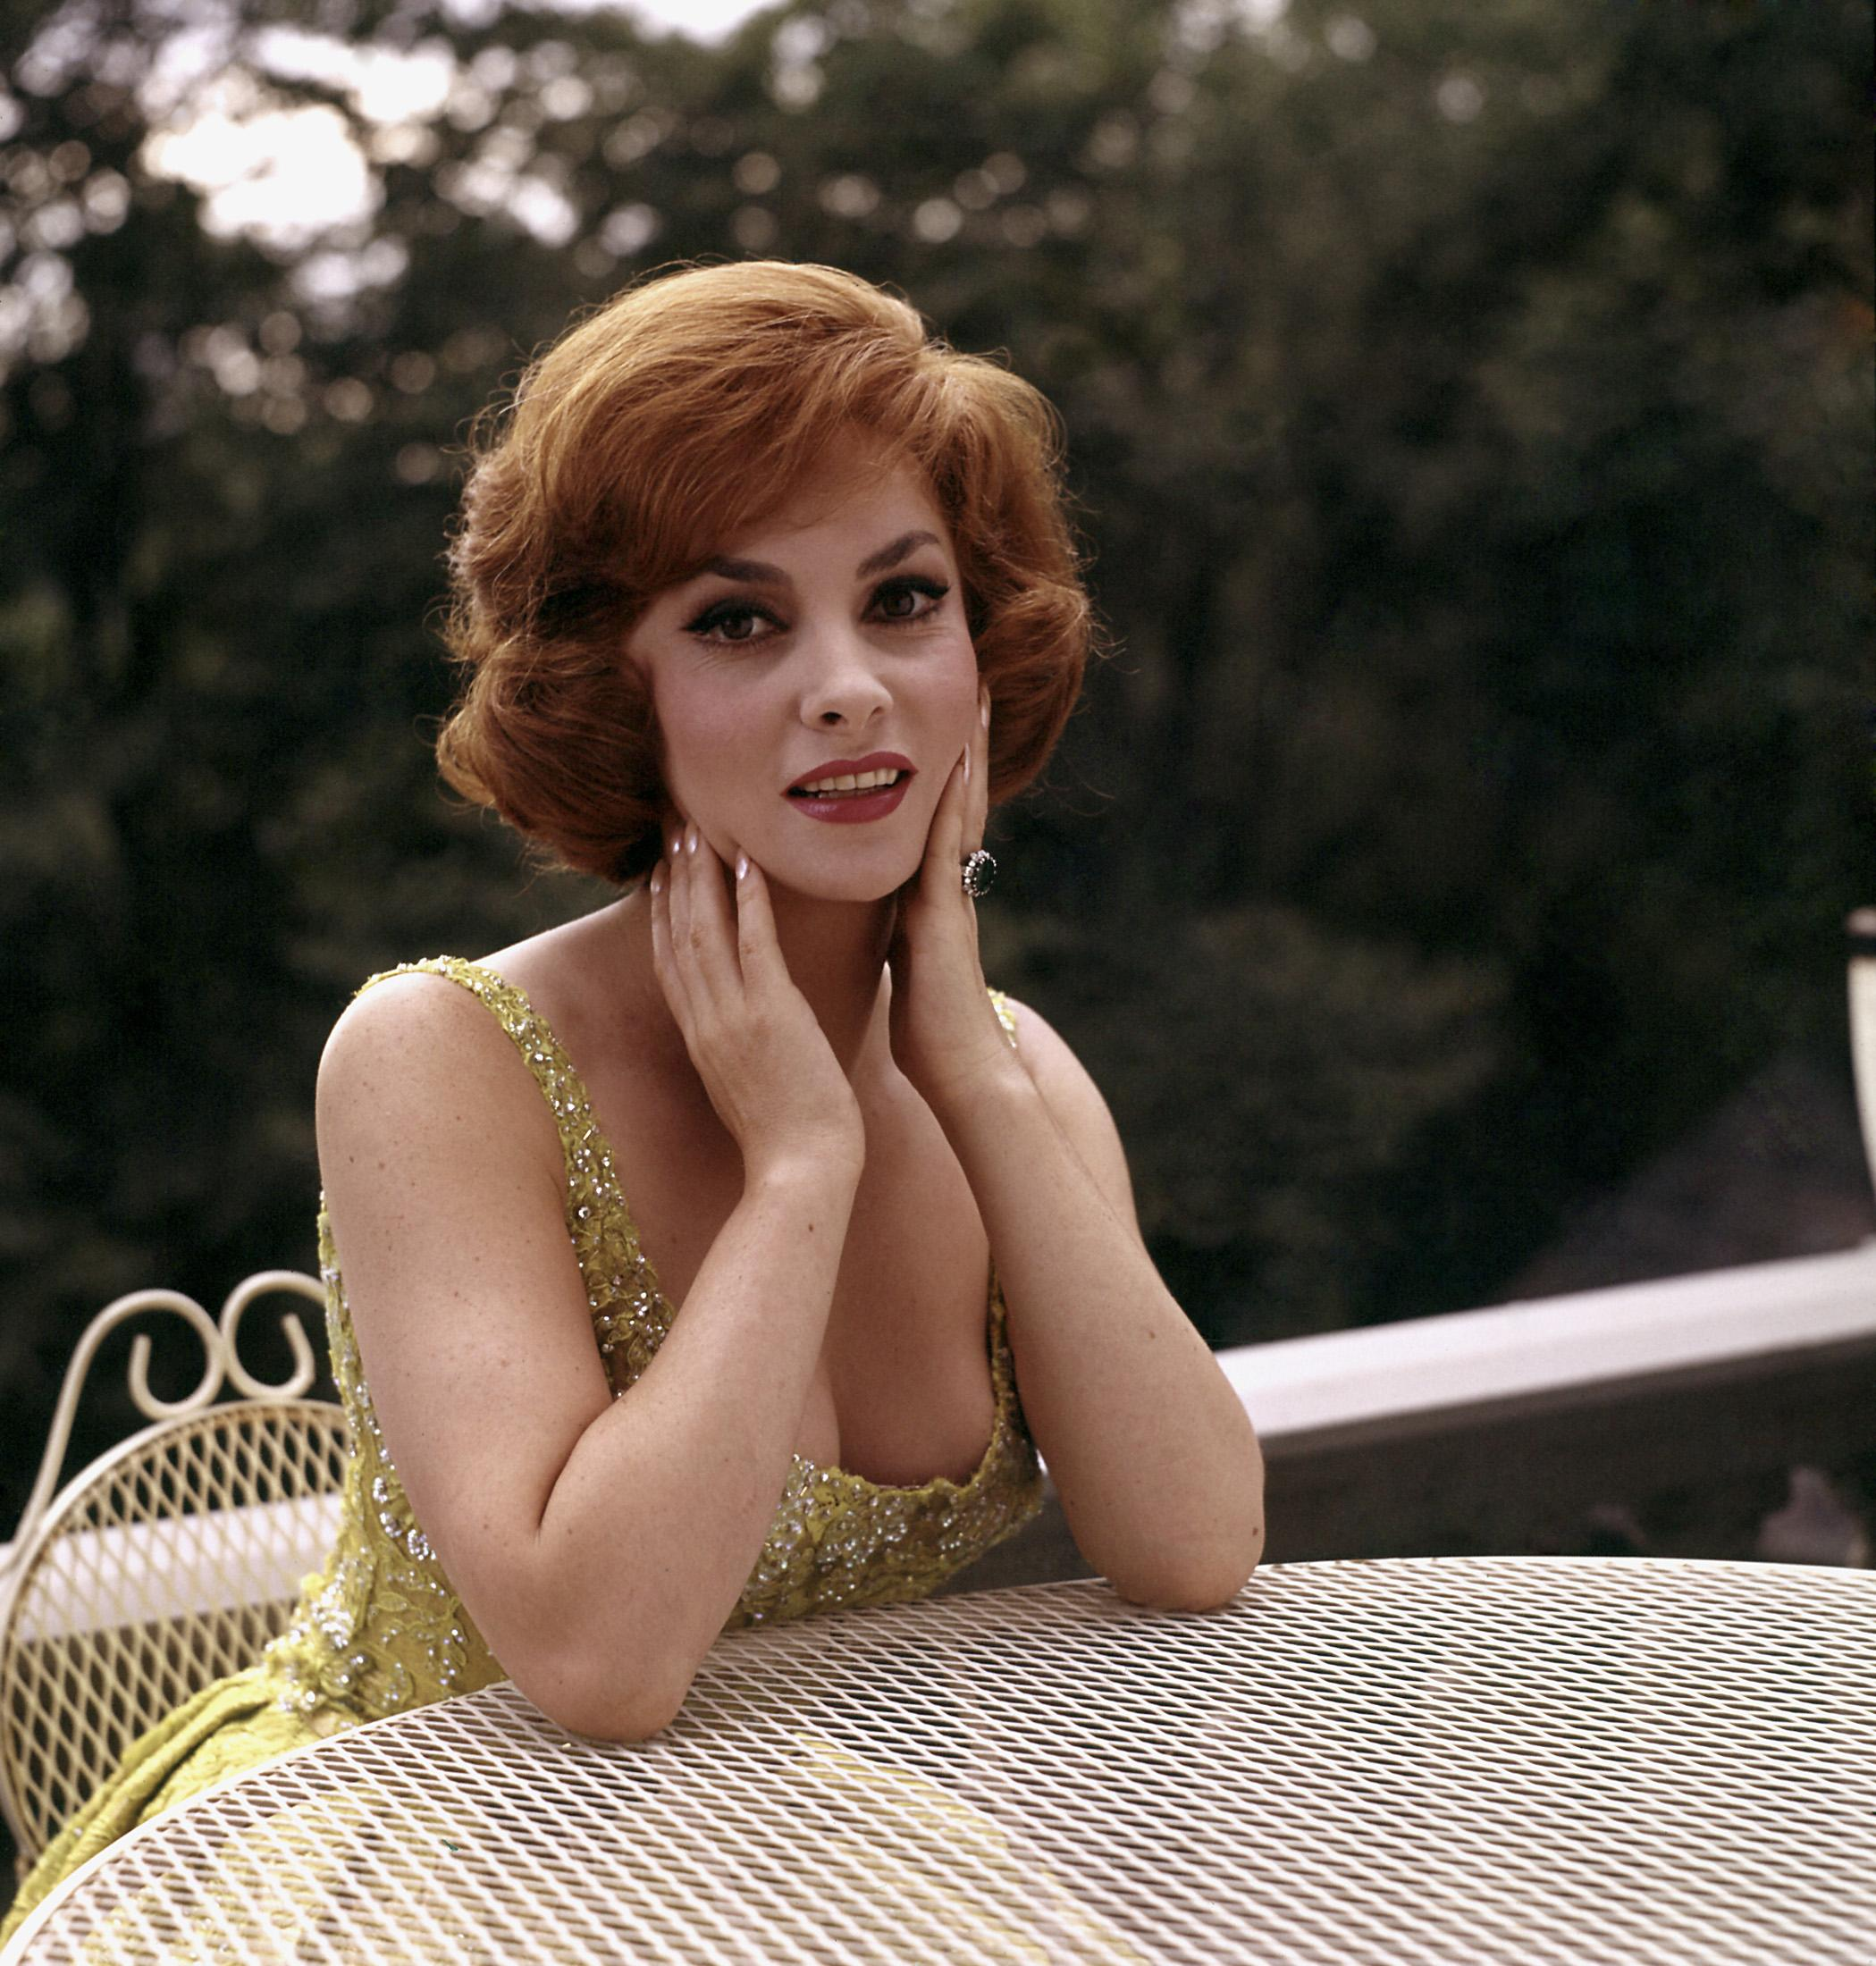 Gina Lollobrigida photo #139176